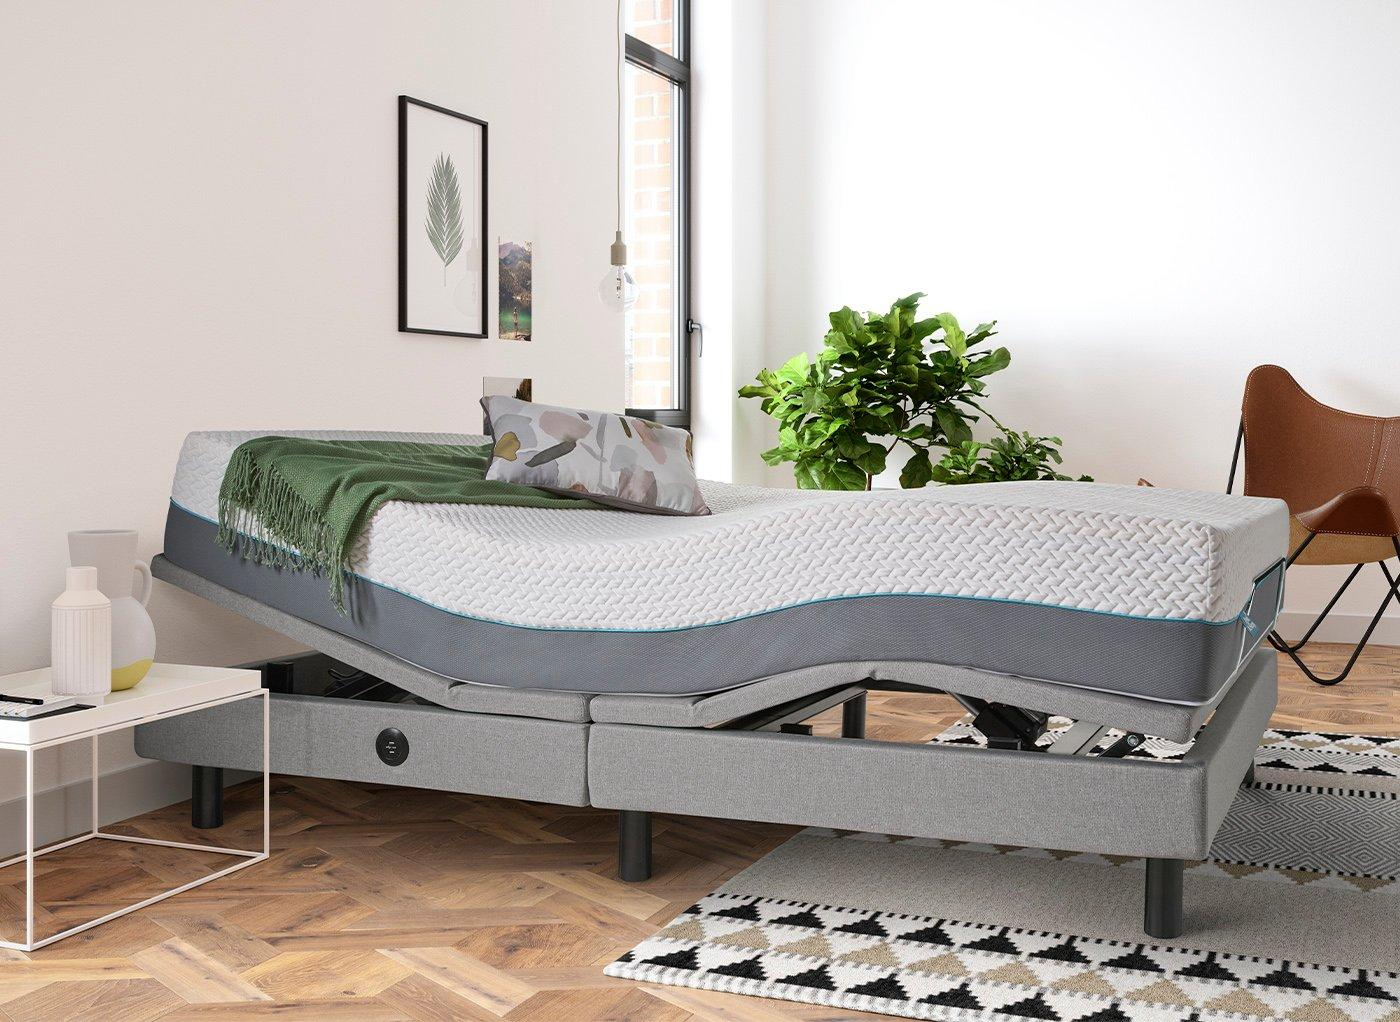 hight resolution of sleepmotion 900i adjustable bed frame